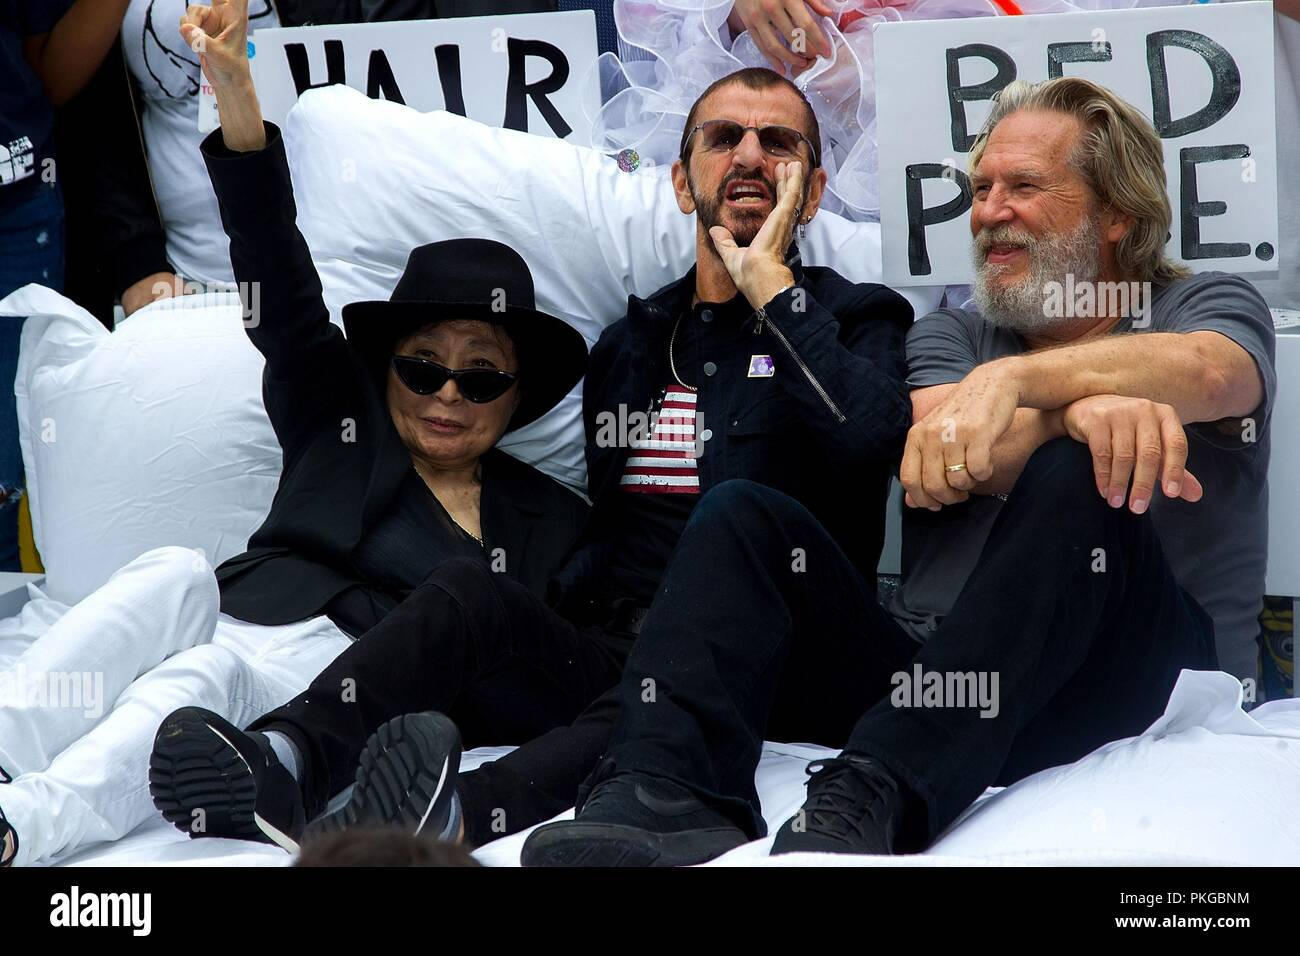 Nueva York, NY, EUA. 13 Sep, 2018. Yoko Ono, Ringo Starr, Jeff Bridges en una aparición pública para el autobús turístico educativo John Lennon devuelve a NYC, New York City Hall, Nueva York, NY, 13 de septiembre de 2018. Crédito: Steve Mack/Everett Collection/Alamy Live News Imagen De Stock